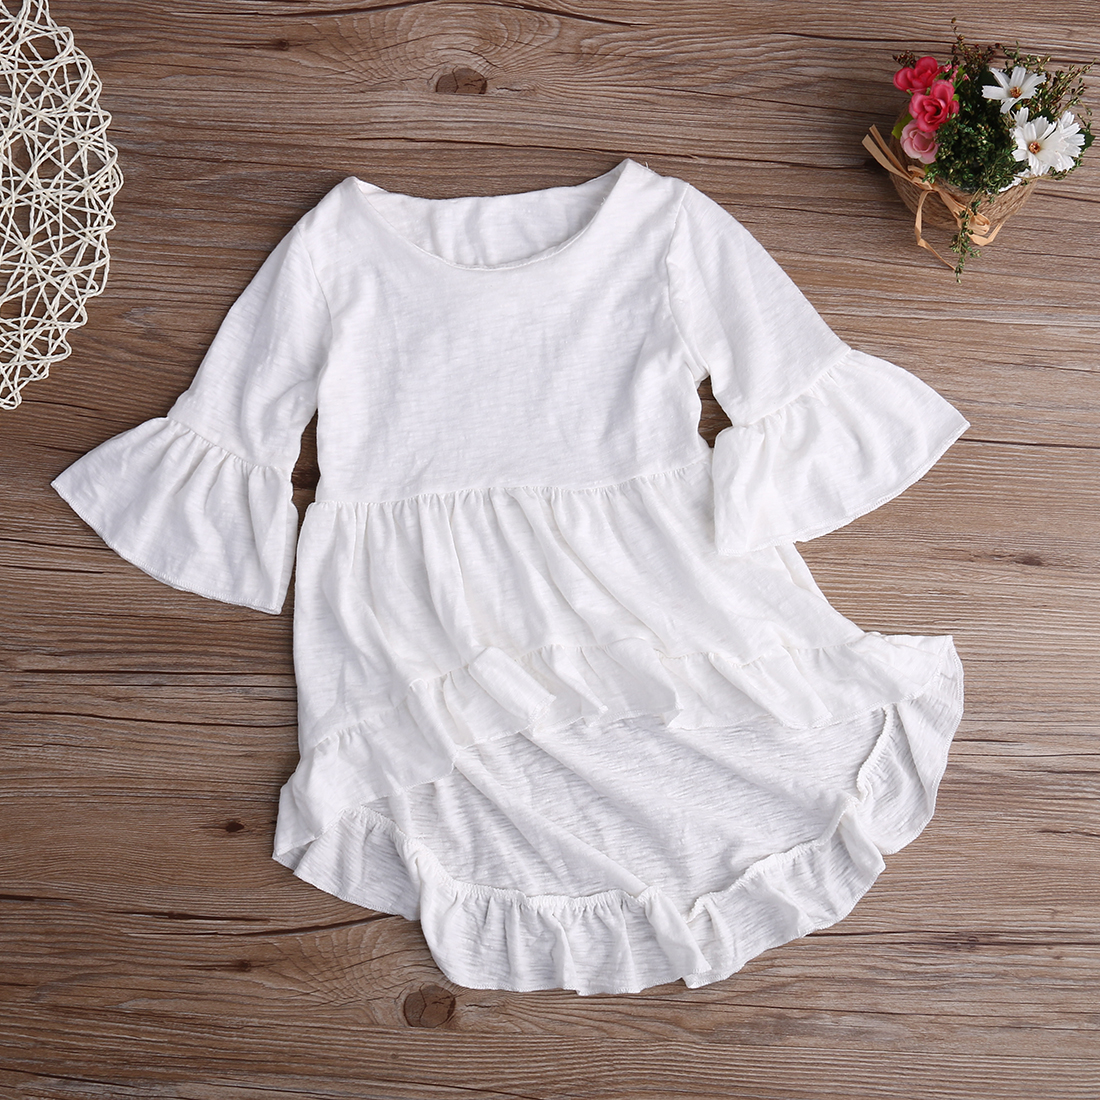 White Baby Girls Dress Frills Flare Sleeve Top T-Shirt Party Ruffles Hem Dresses 1-6Y open shoulder dolman sleeve dip hem dress